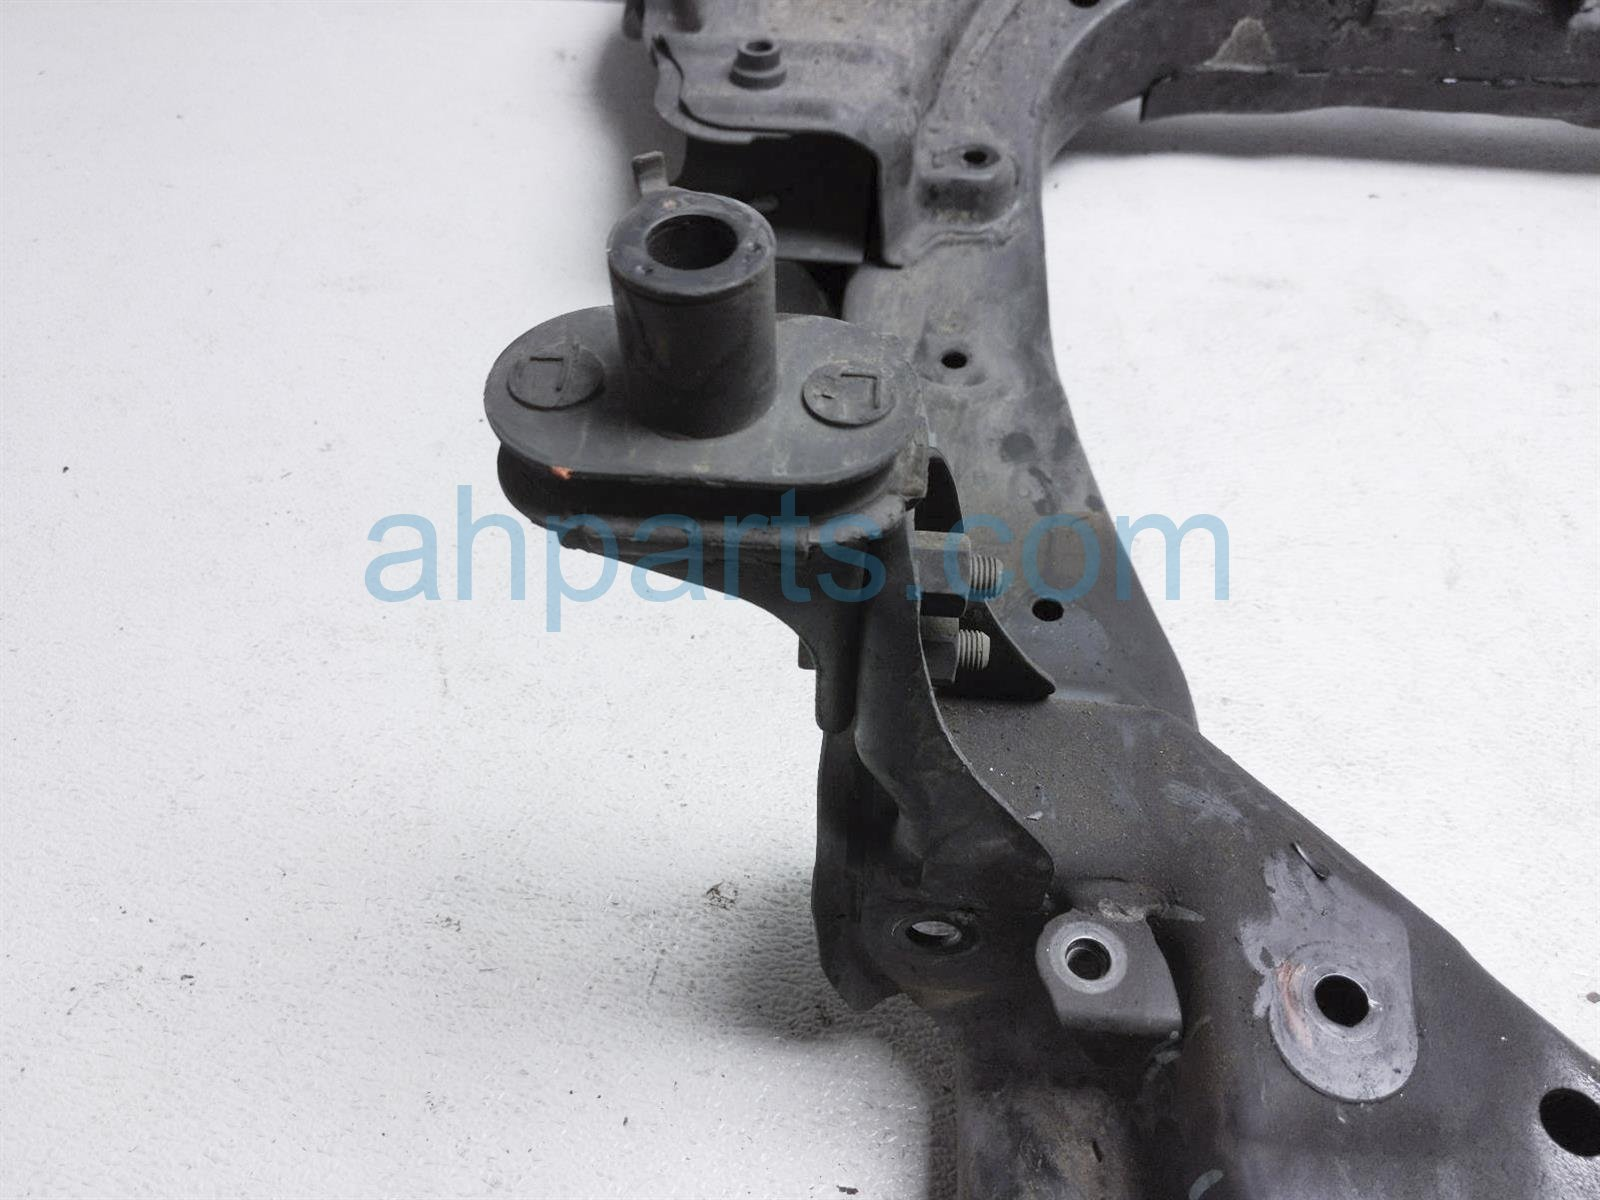 2007 Honda Accord Crossmember Front Sub Frame / Cradle 50200 SDB A02 Replacement